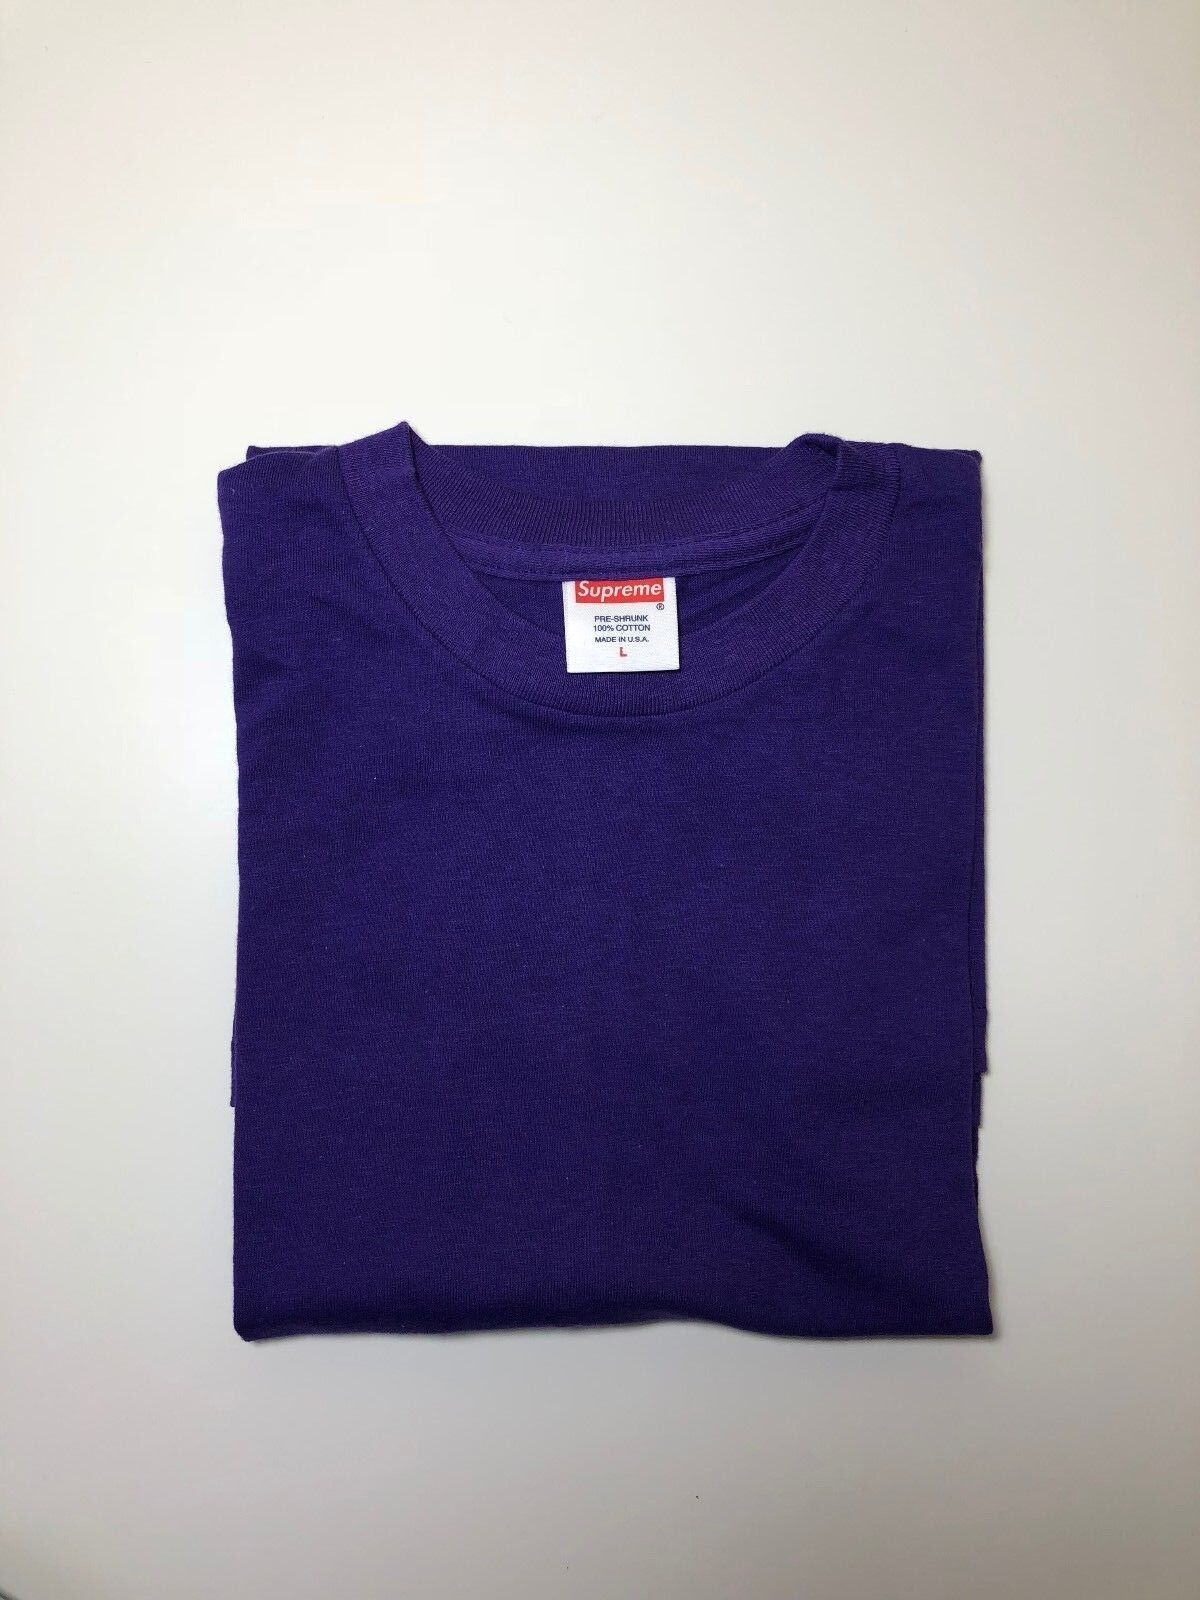 Supreme Blank Tee T-Shirt Purple Kmart Box Logo Large